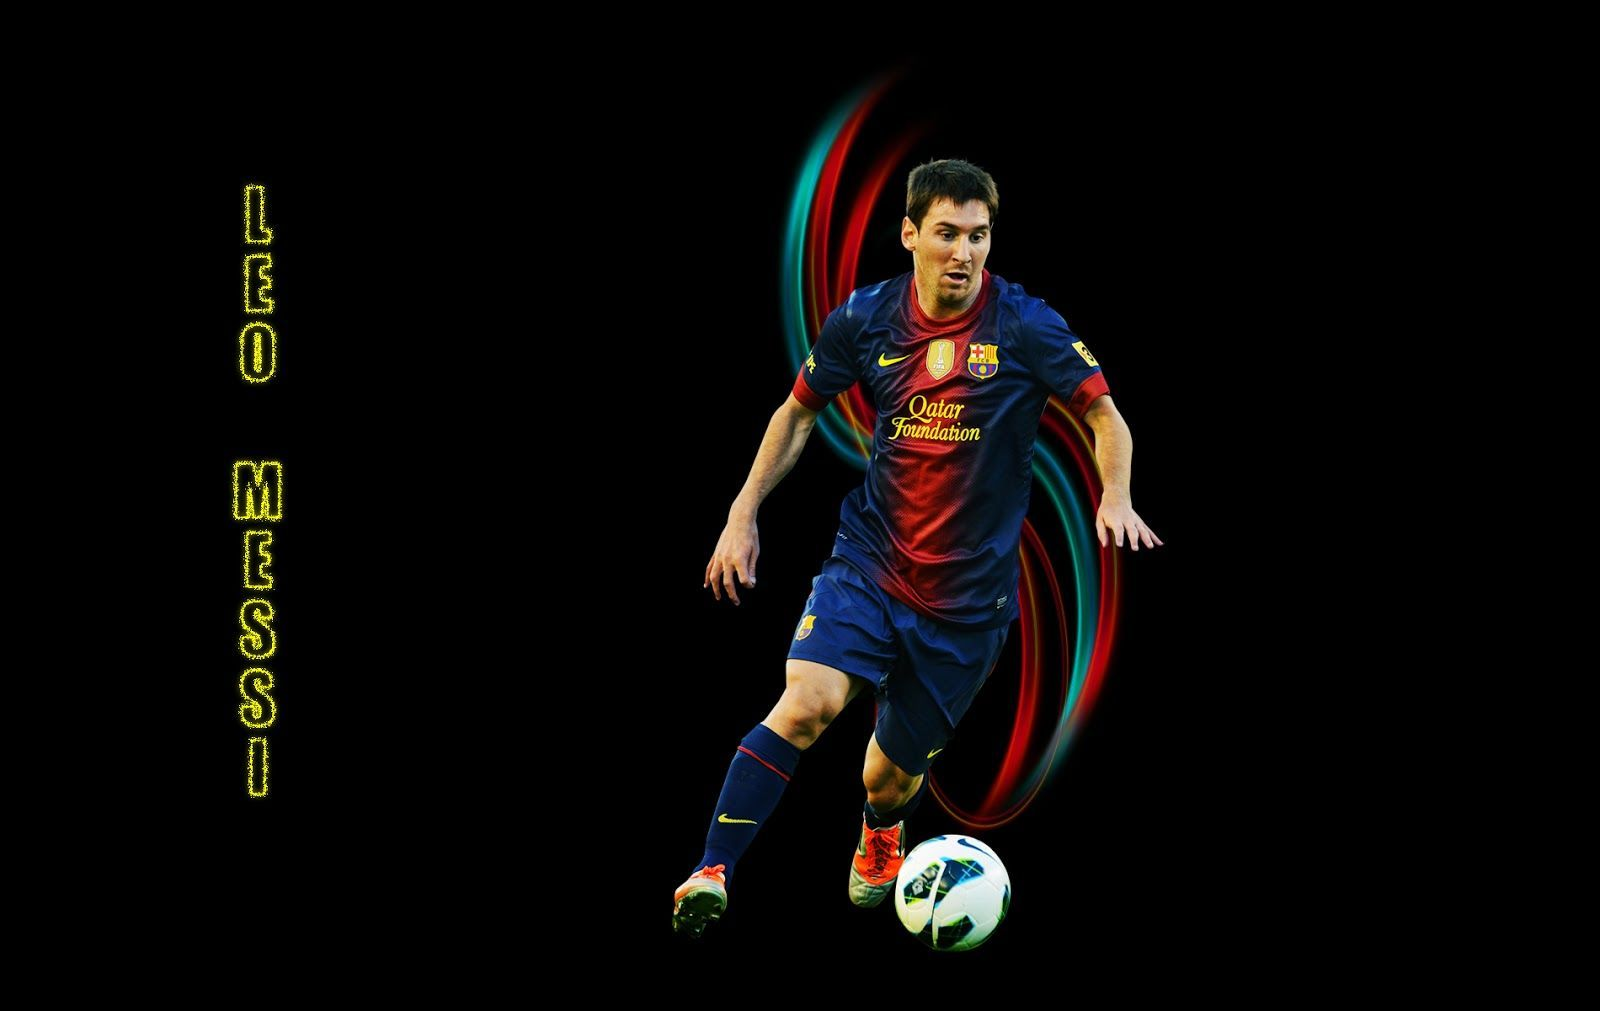 Lionel Messi HD Wallpapers p